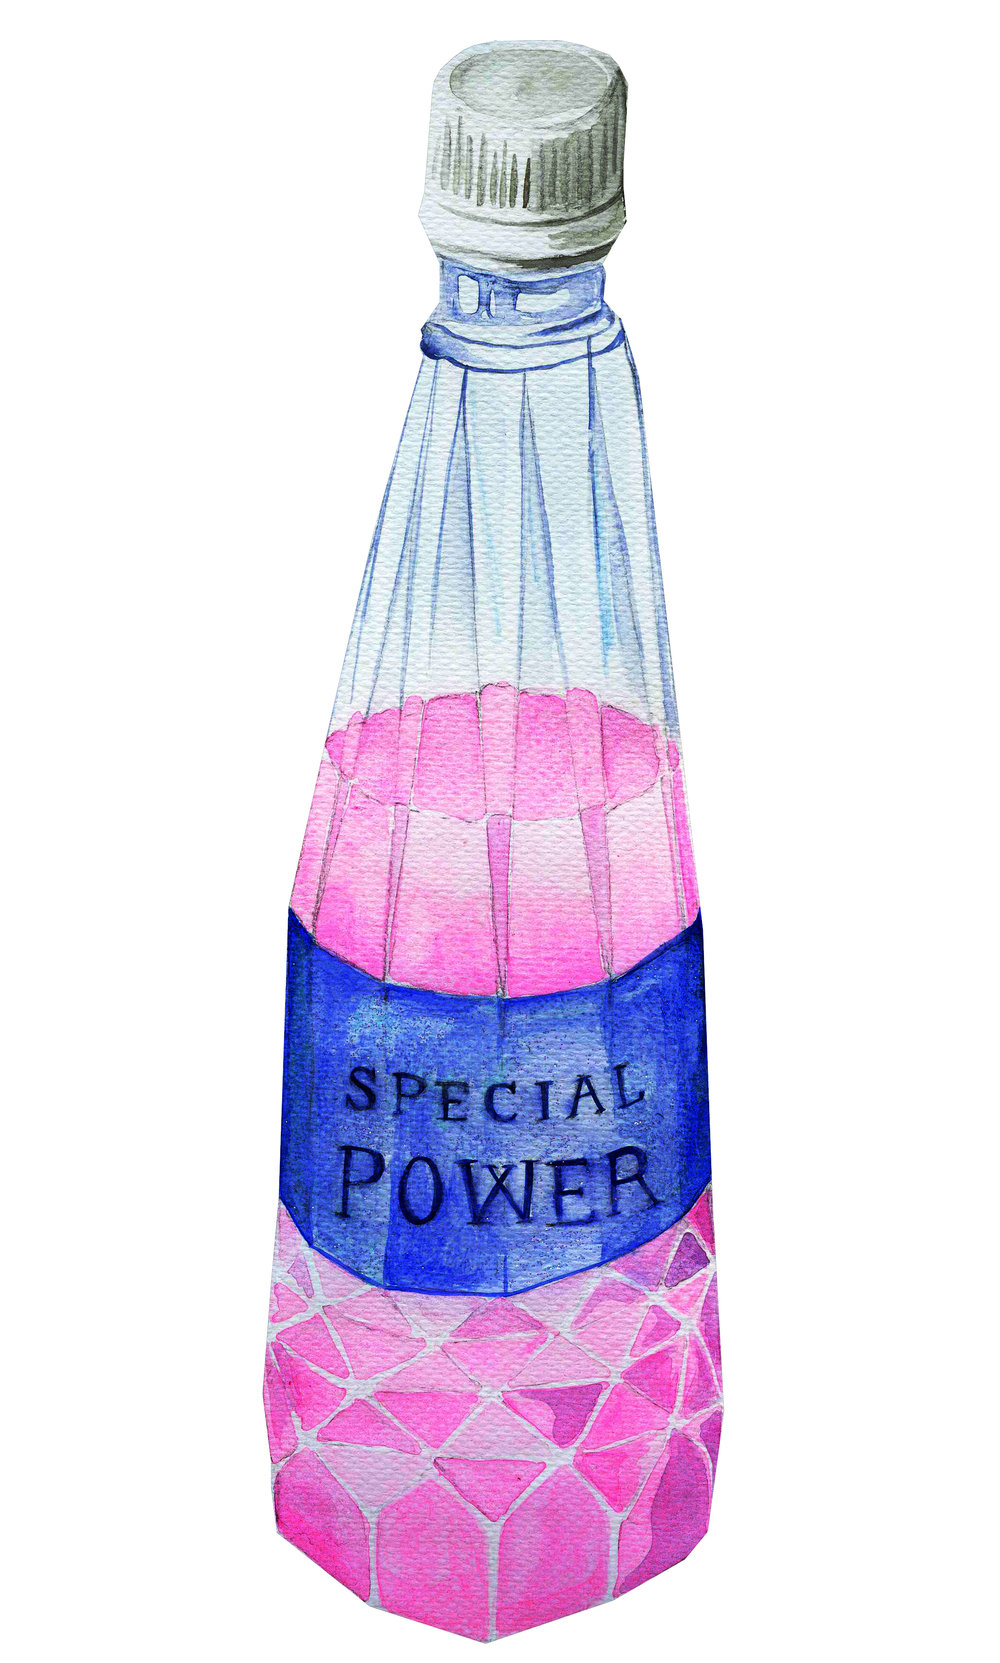 Special Powers, 2010.